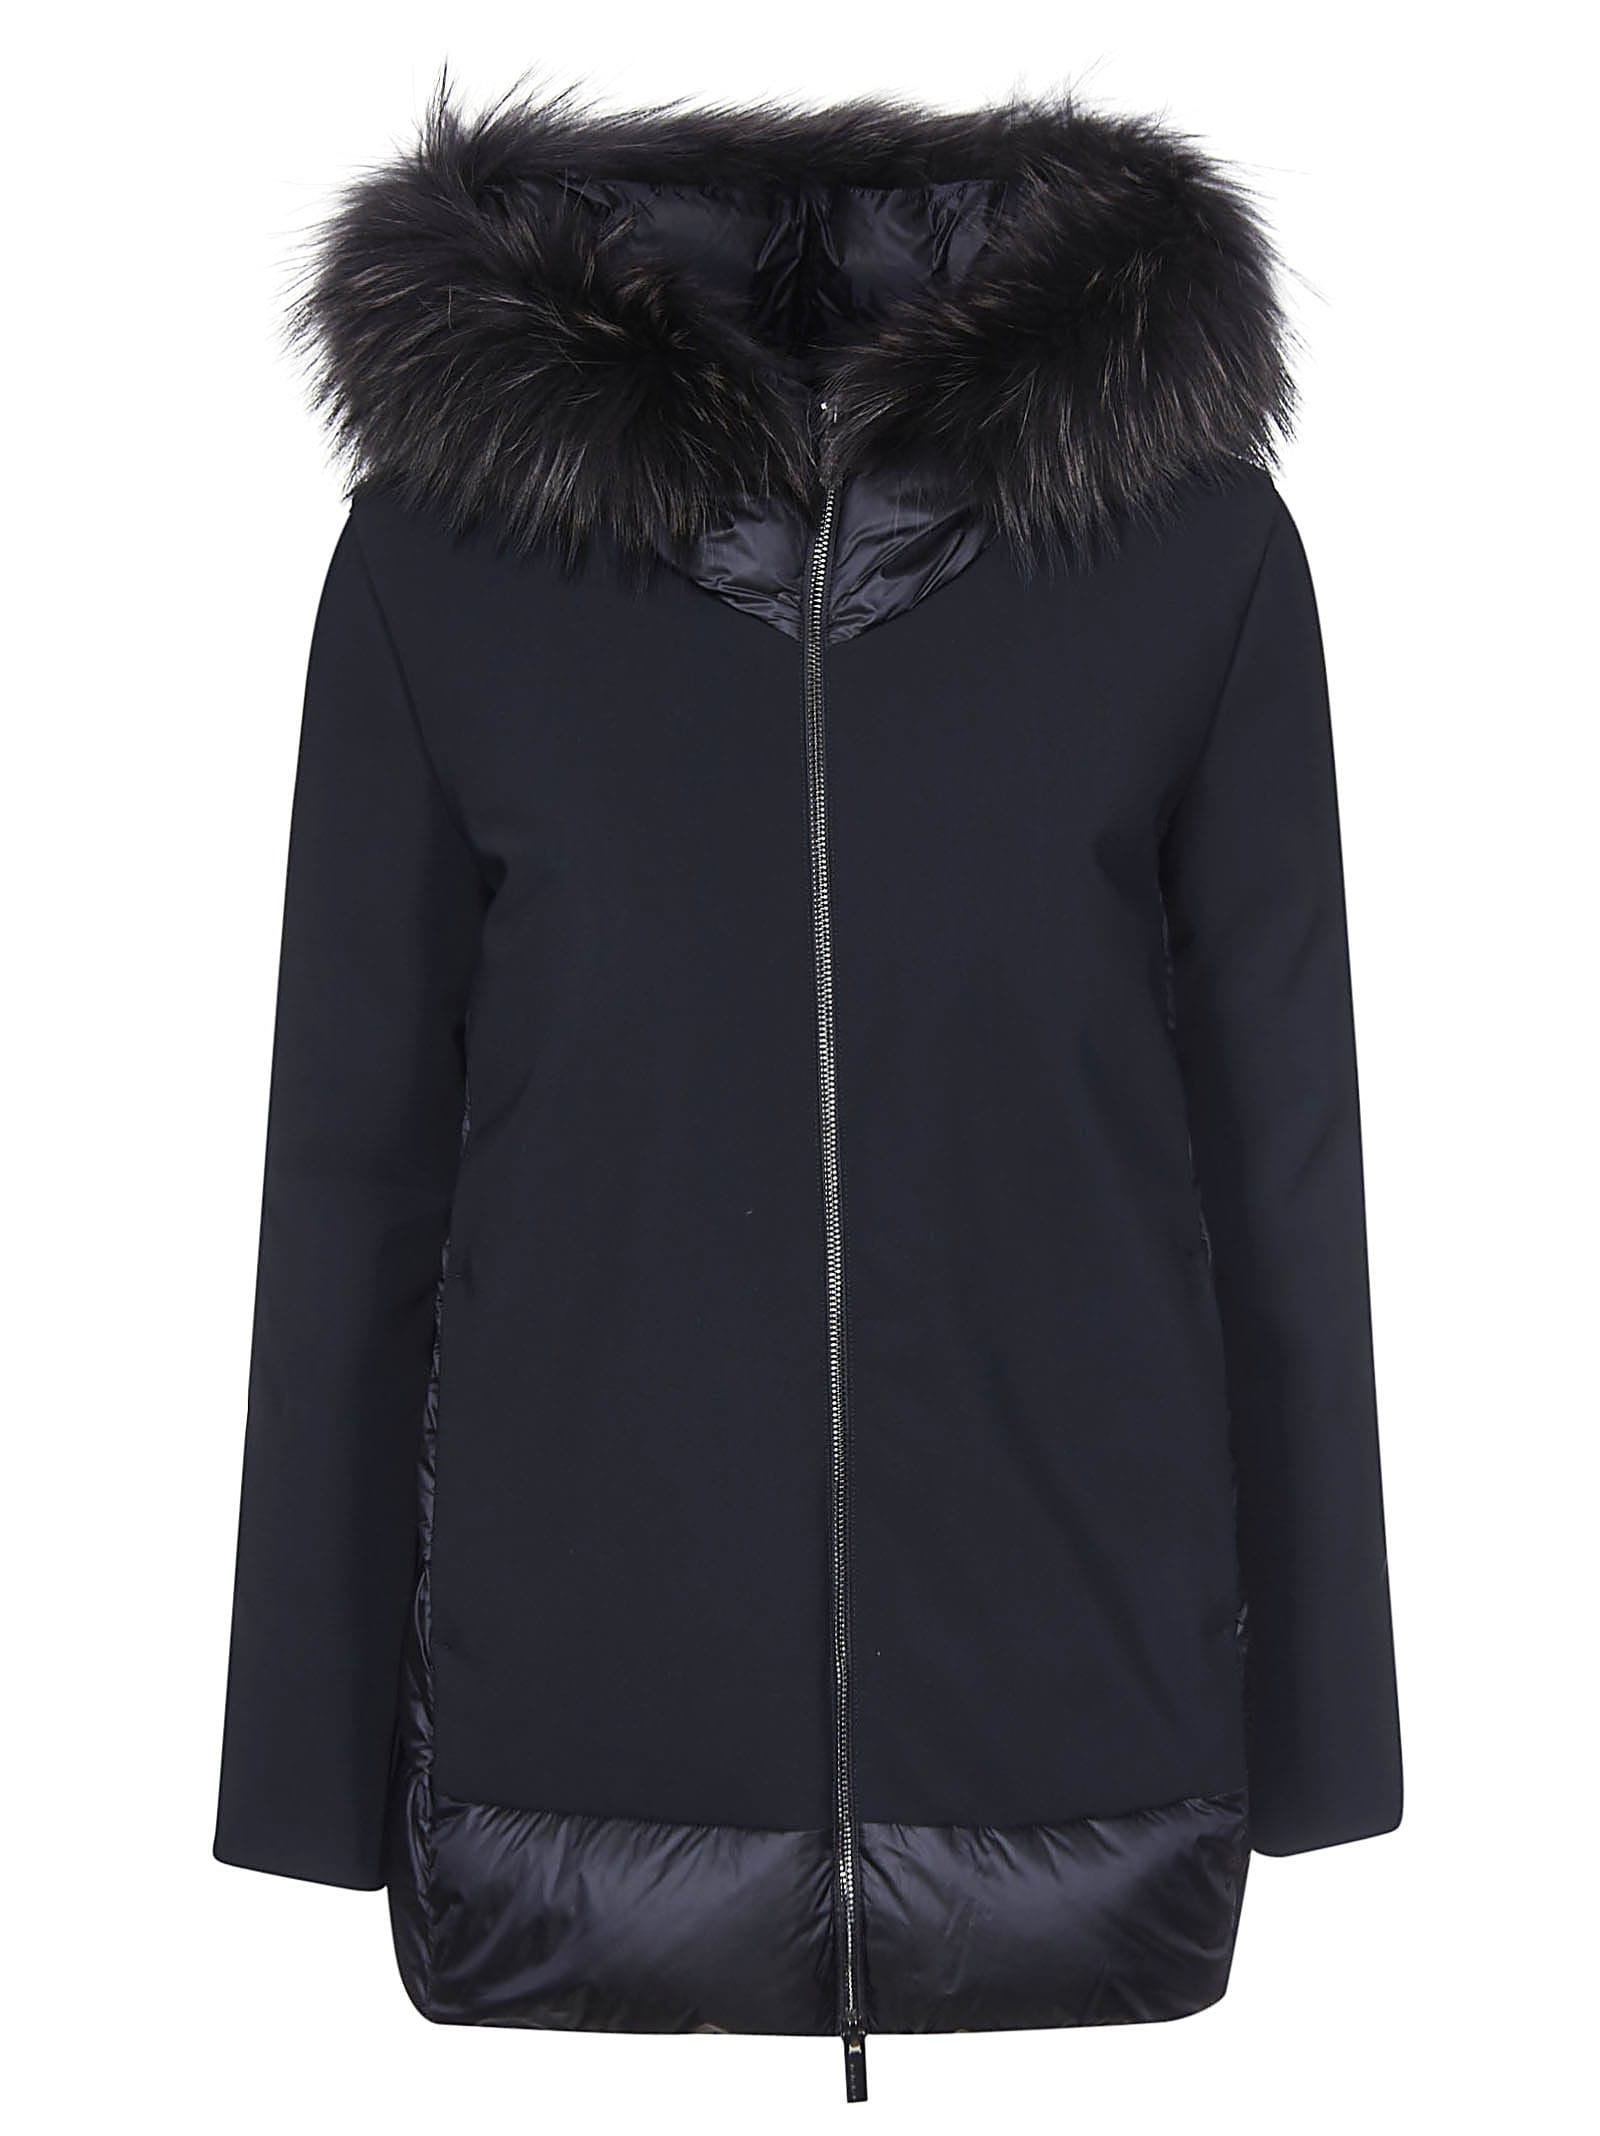 RRD – Roberto Ricci Design Back Padded Detail Hooded Furred Jacket